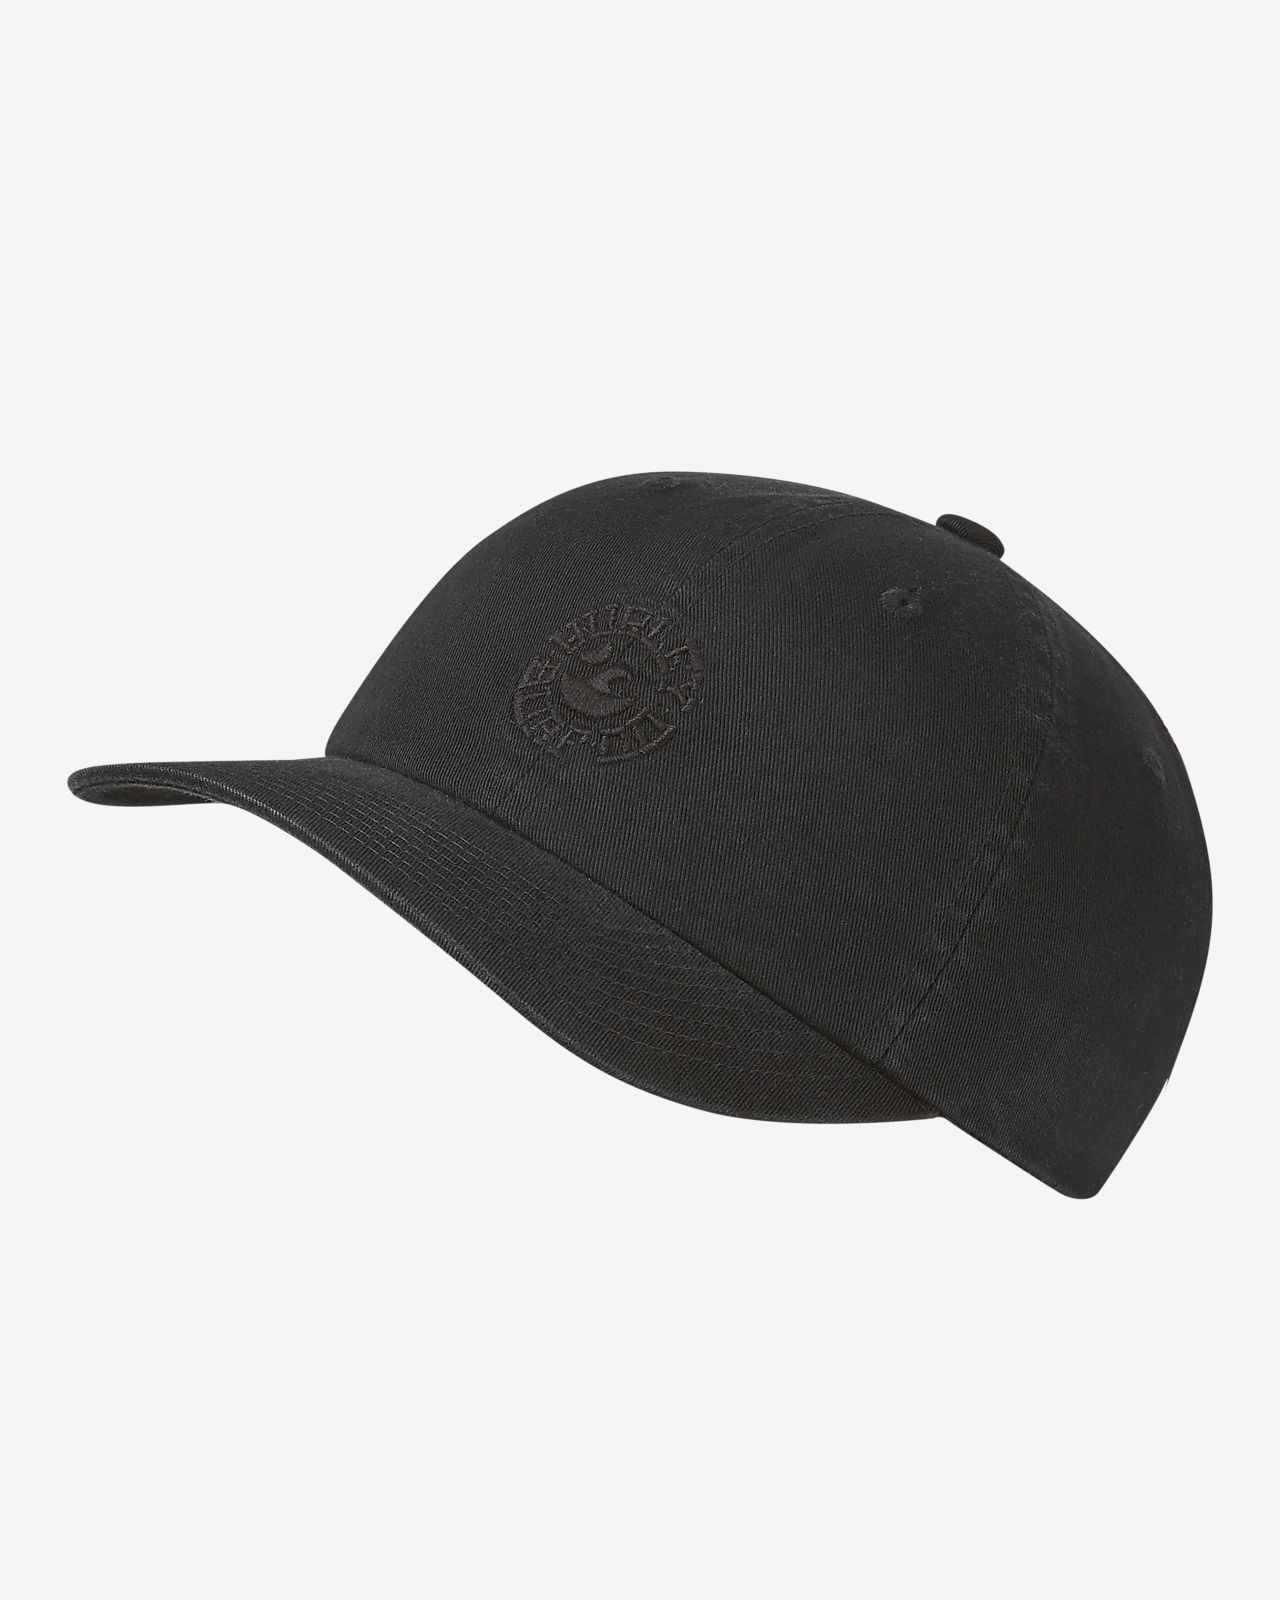 separation shoes 0e0e5 fd012 ... Hurley Good Times Men s Hat